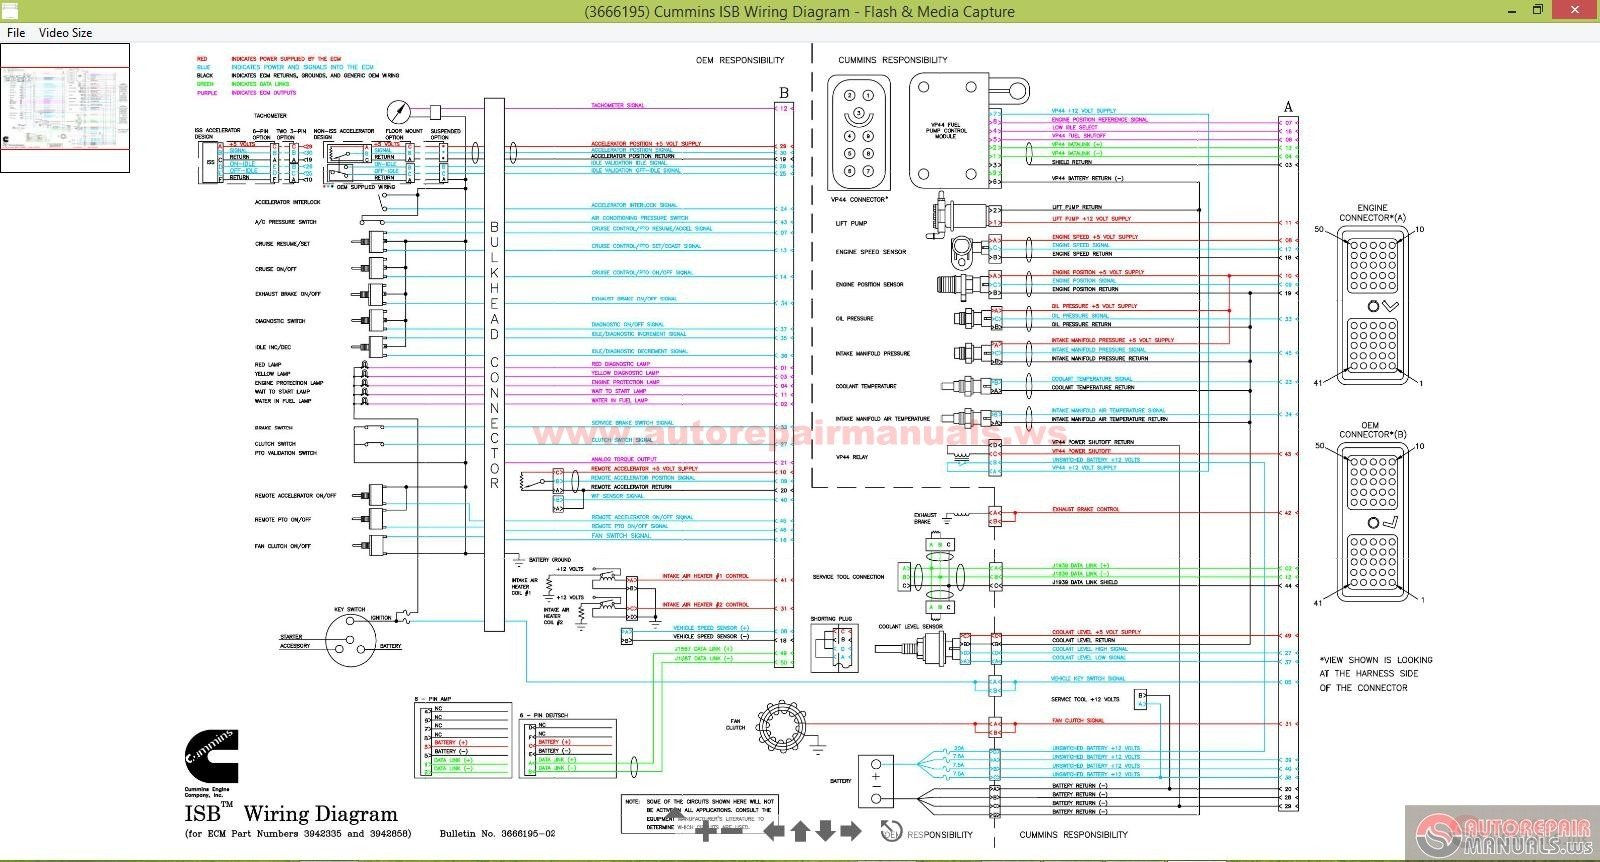 kenworth alternator wiring with Ford F650 Cummins Wiring Diagram on Ford F650 Cummins Wiring Diagram additionally 10 Round Table Seating Chart Diagram besides SK25756 together with Wiring as well 4mnsb 2005 Kw Isx Xxxxx Pid 131 Fmi Pid.